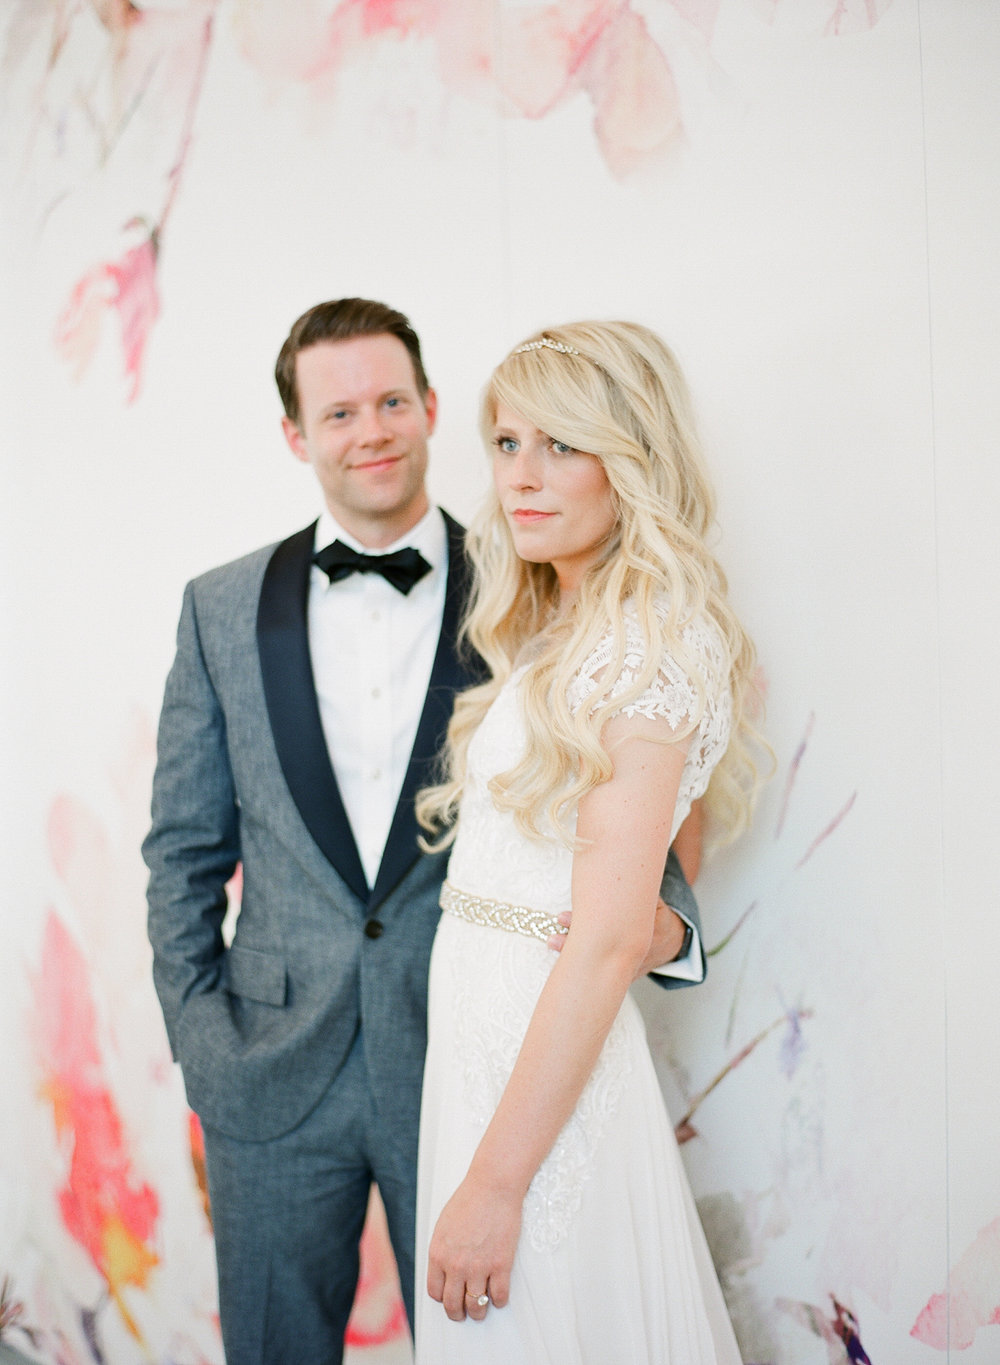 PROSPECT_HOUSE_WEDDING_AUSTIN_TX_BY_MATTHEW_MOORE_PHOTOGRAPHY_00145.jpg